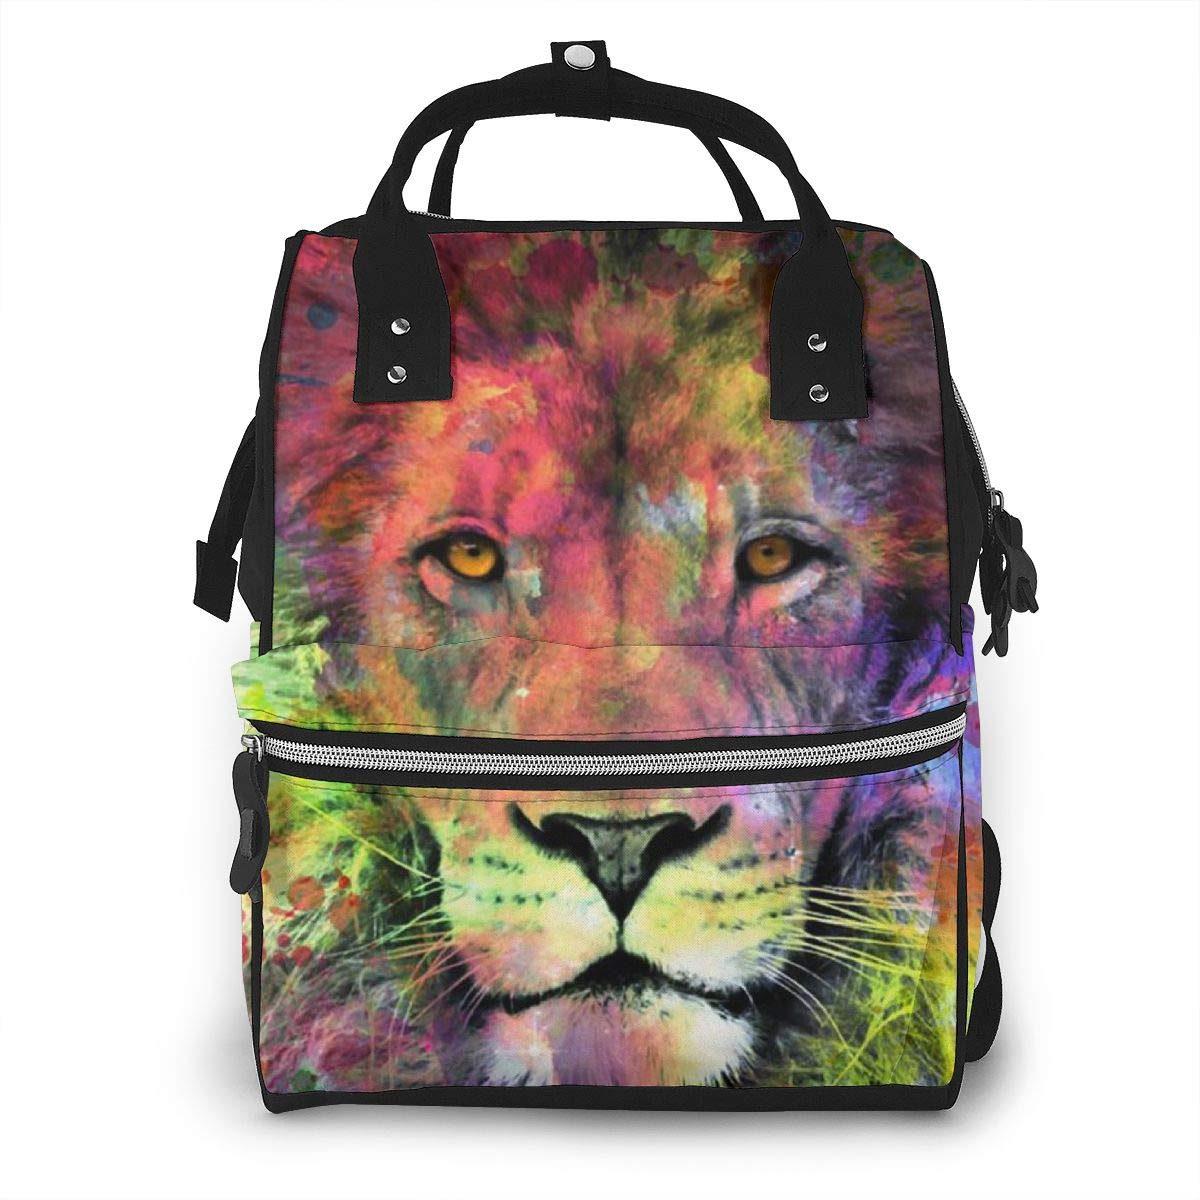 TYTland Lion Oil Painting Durable Multi-Function Waterproof Baby Diaper Backpacks by TYTland